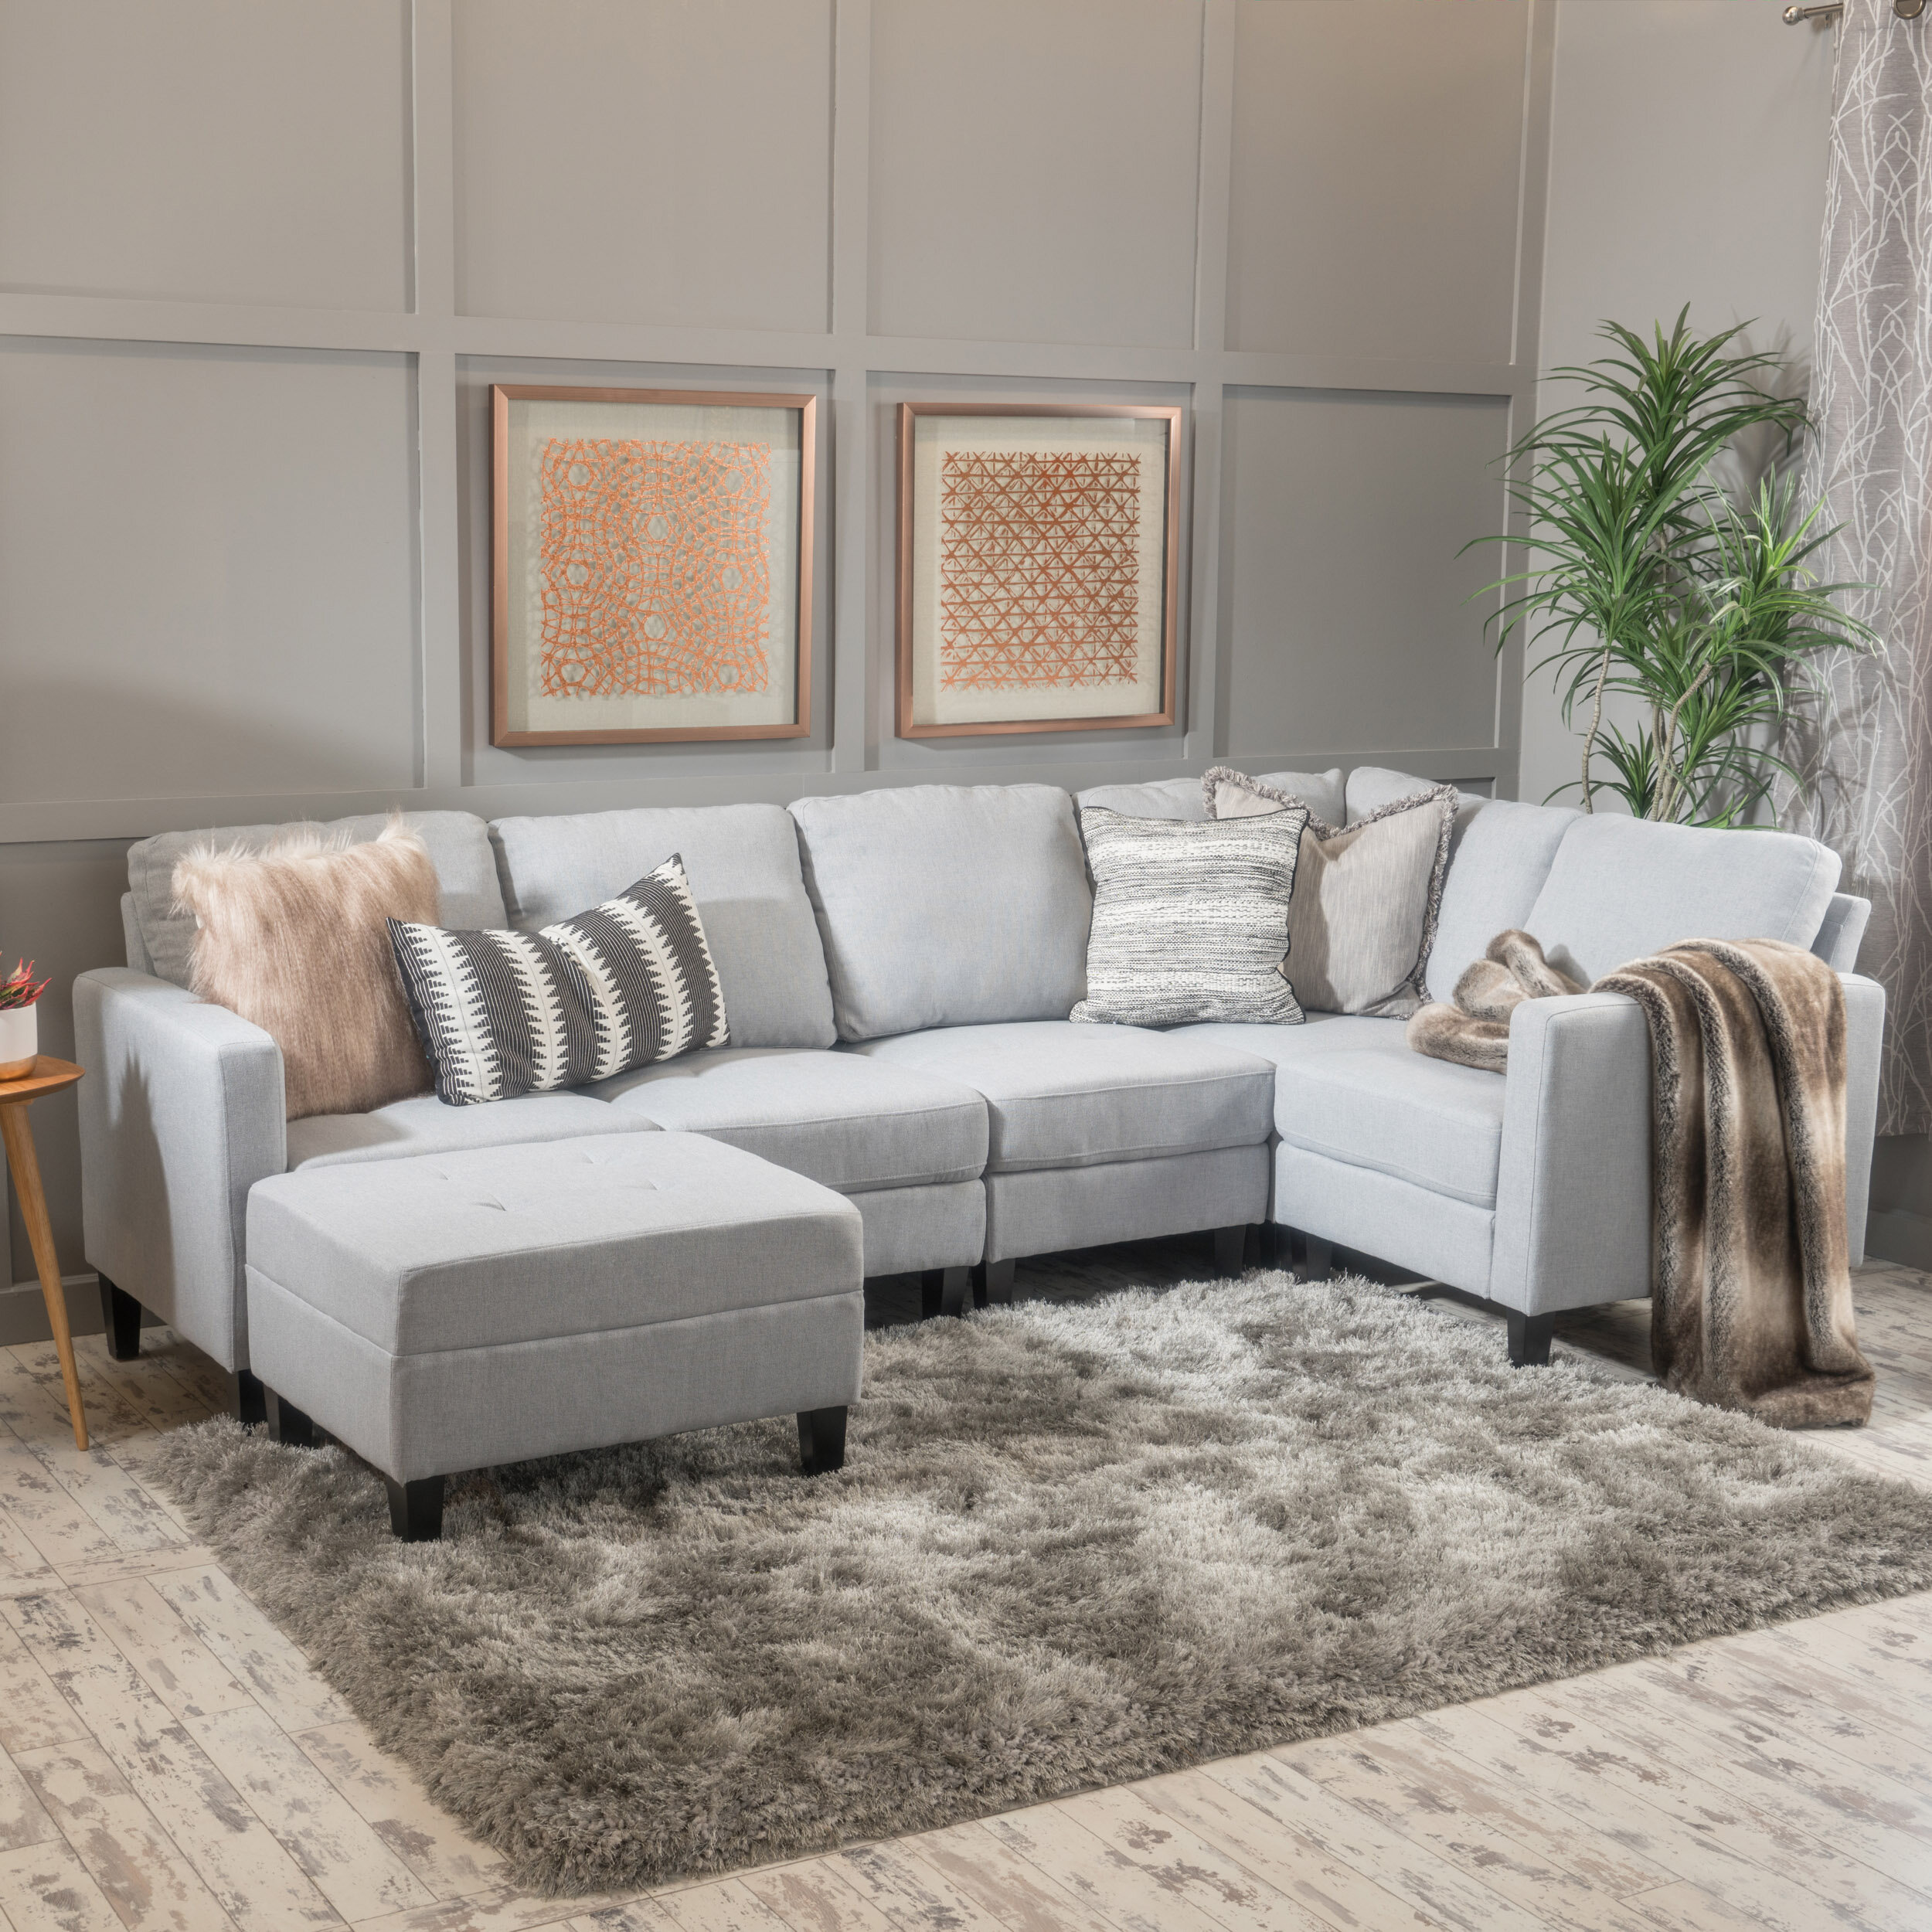 Astonishing Longwood Modular Sectional With Ottoman Gmtry Best Dining Table And Chair Ideas Images Gmtryco